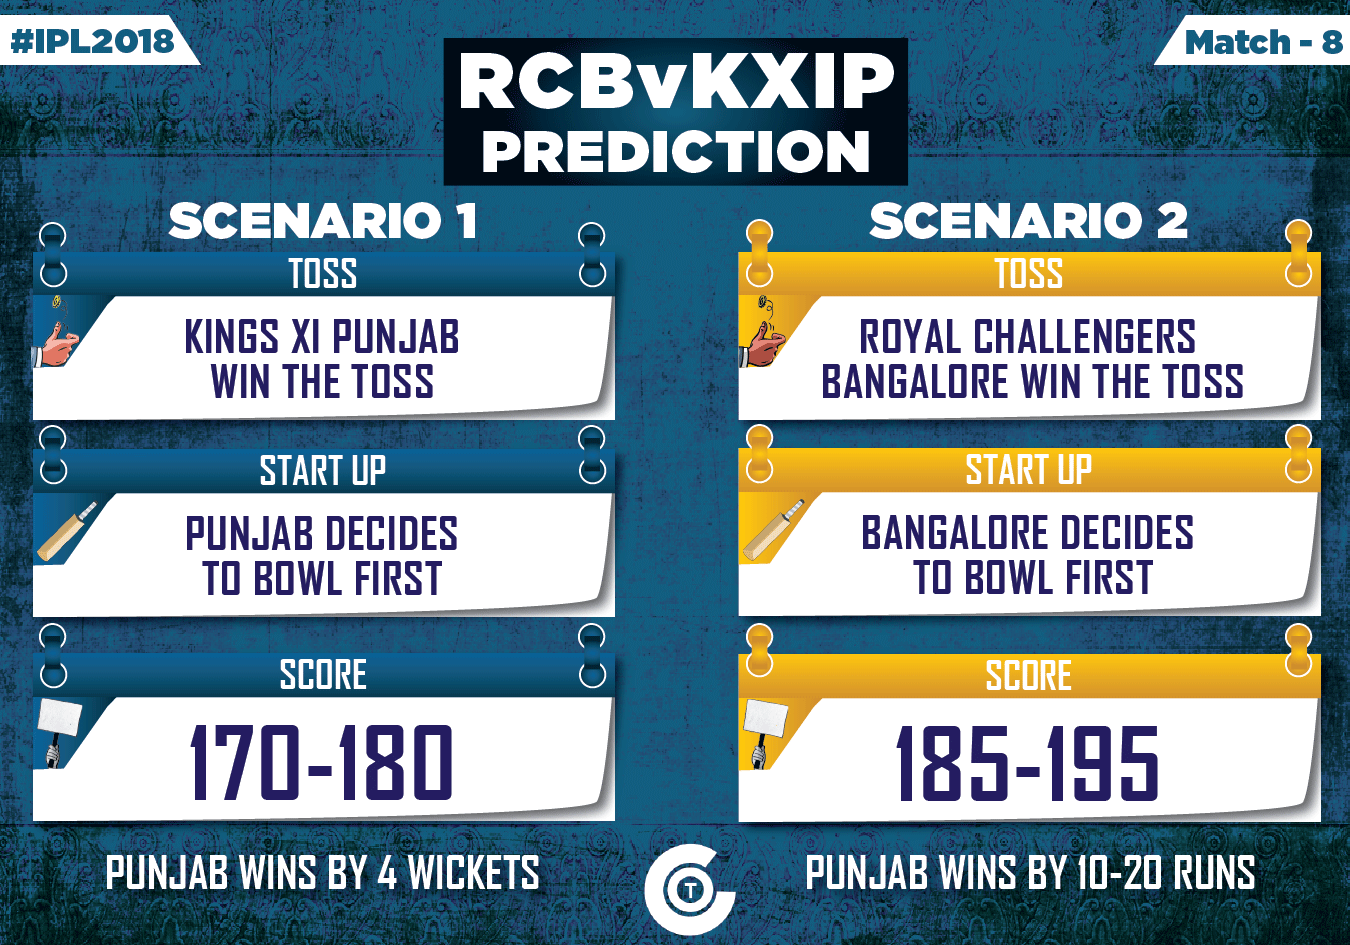 IPL-2018-RCBvKXIP-Match-8-Prediction